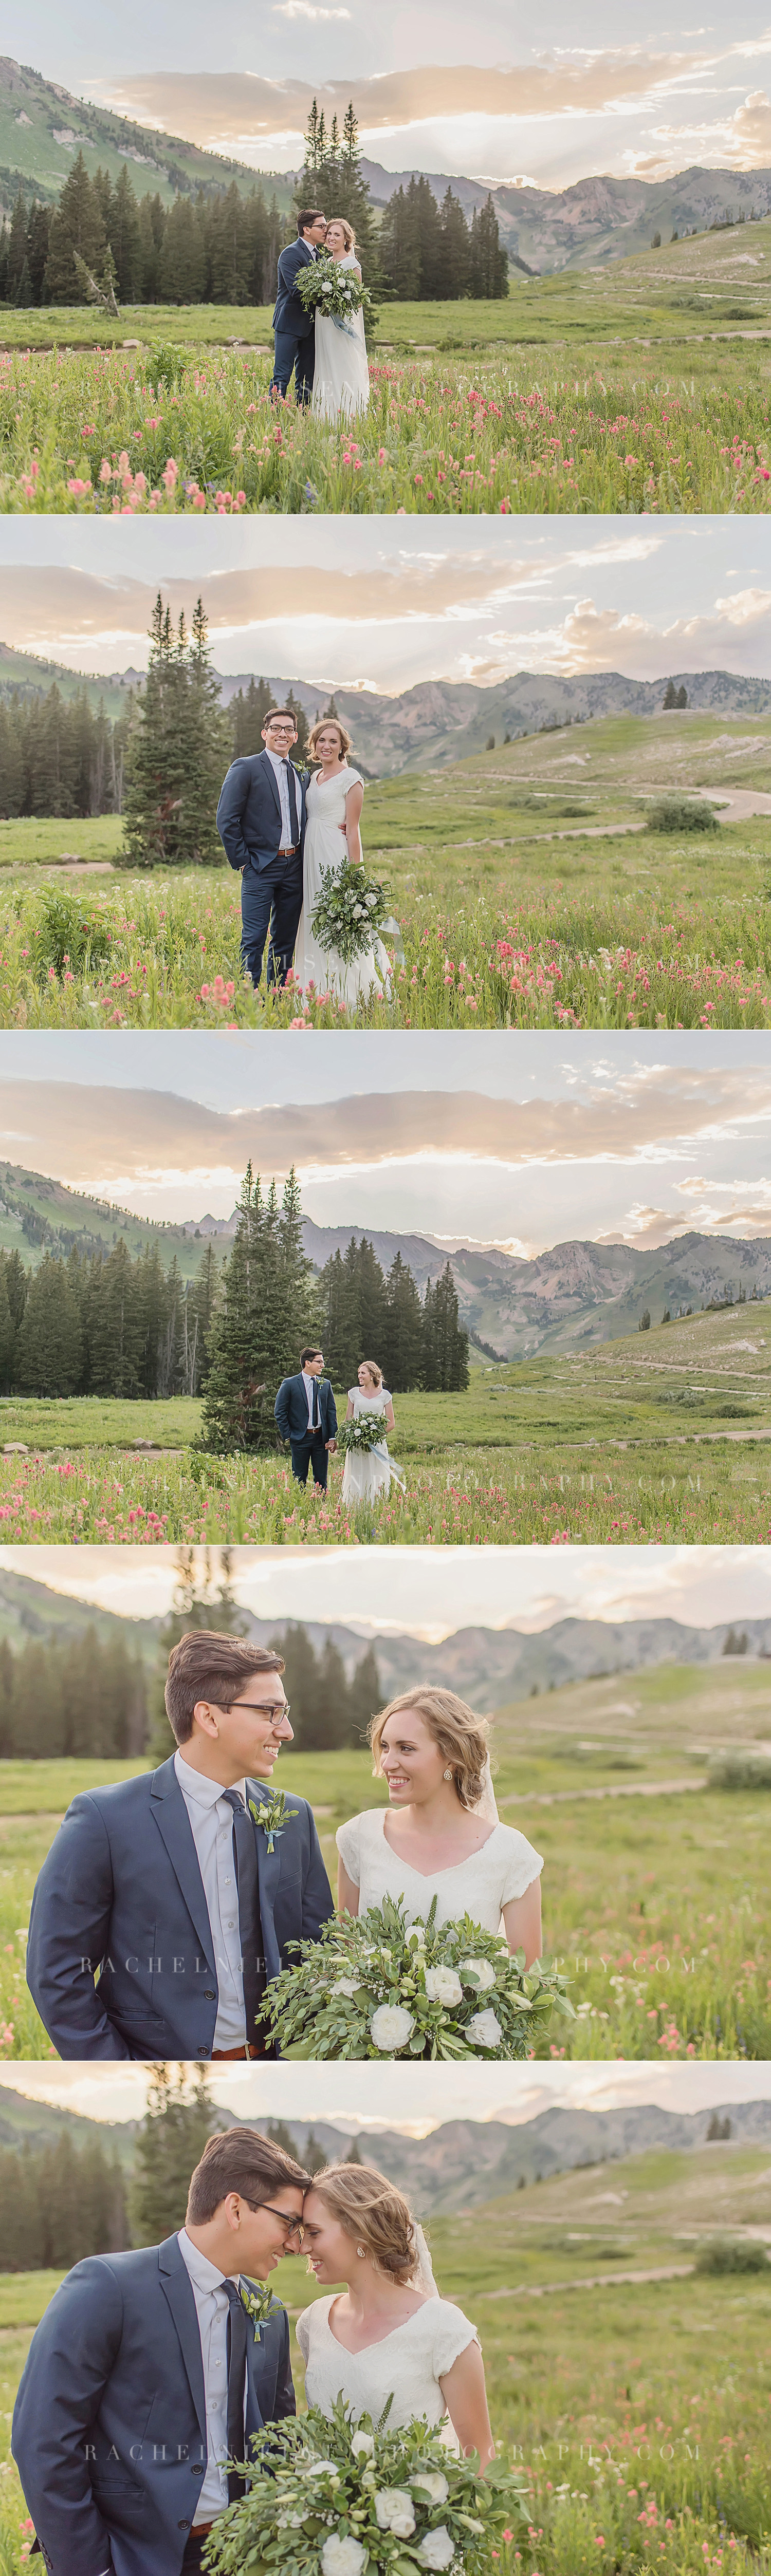 Albion-basin-bride-and-groom-14